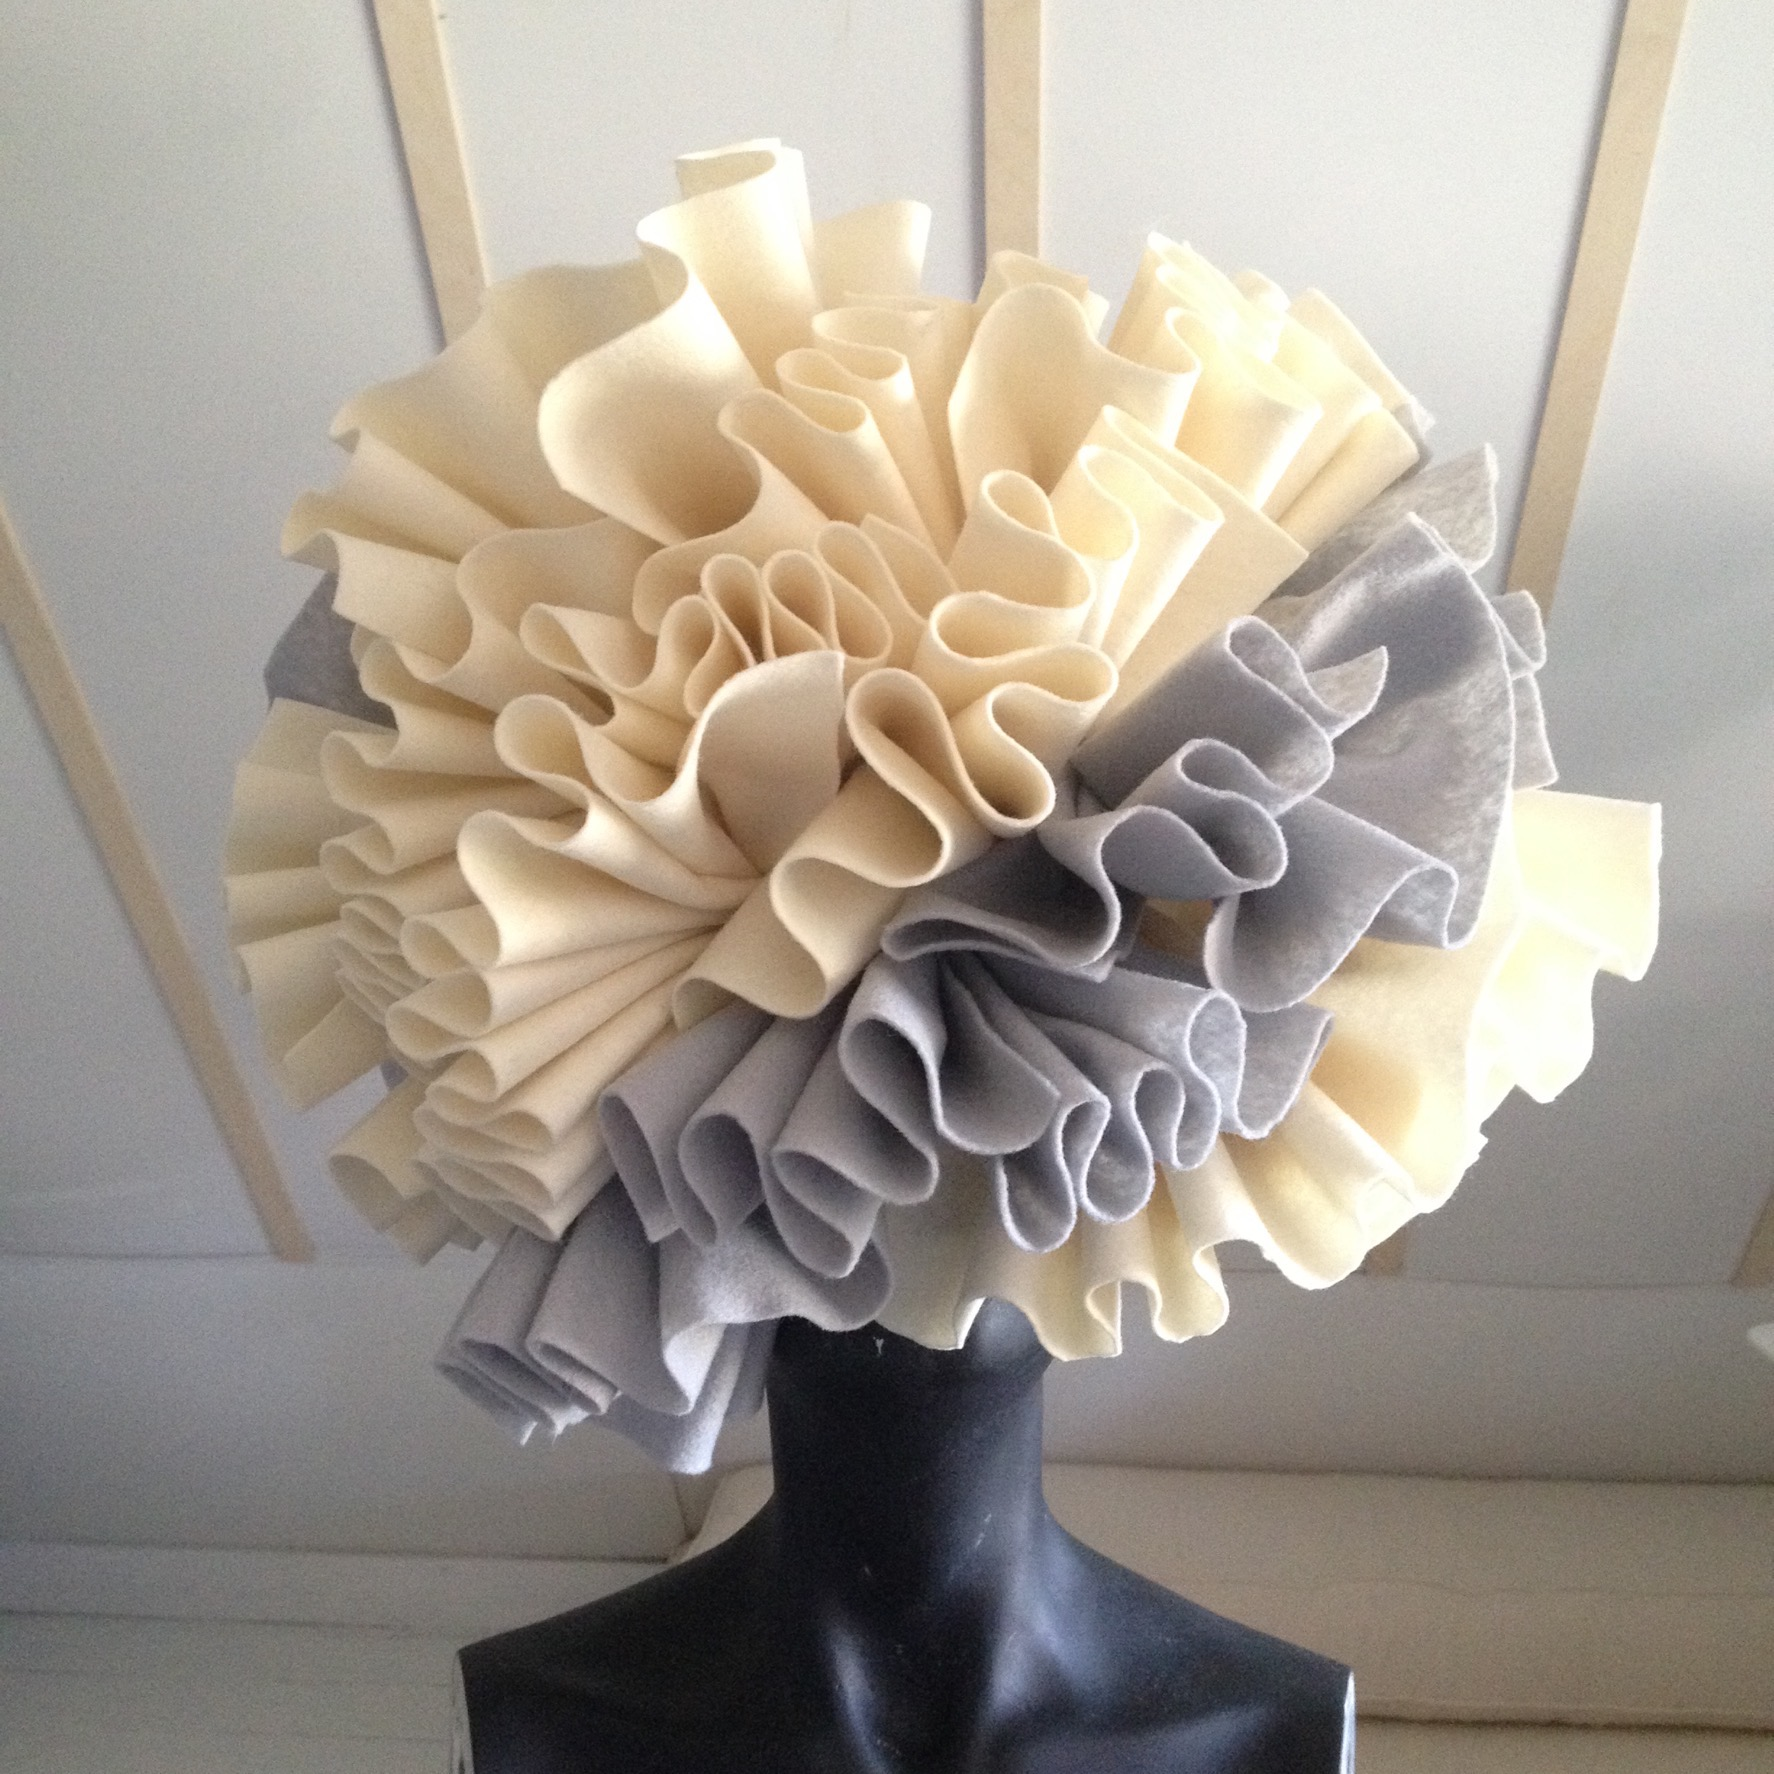 HOLT RENFREW - Head piece for National directive.